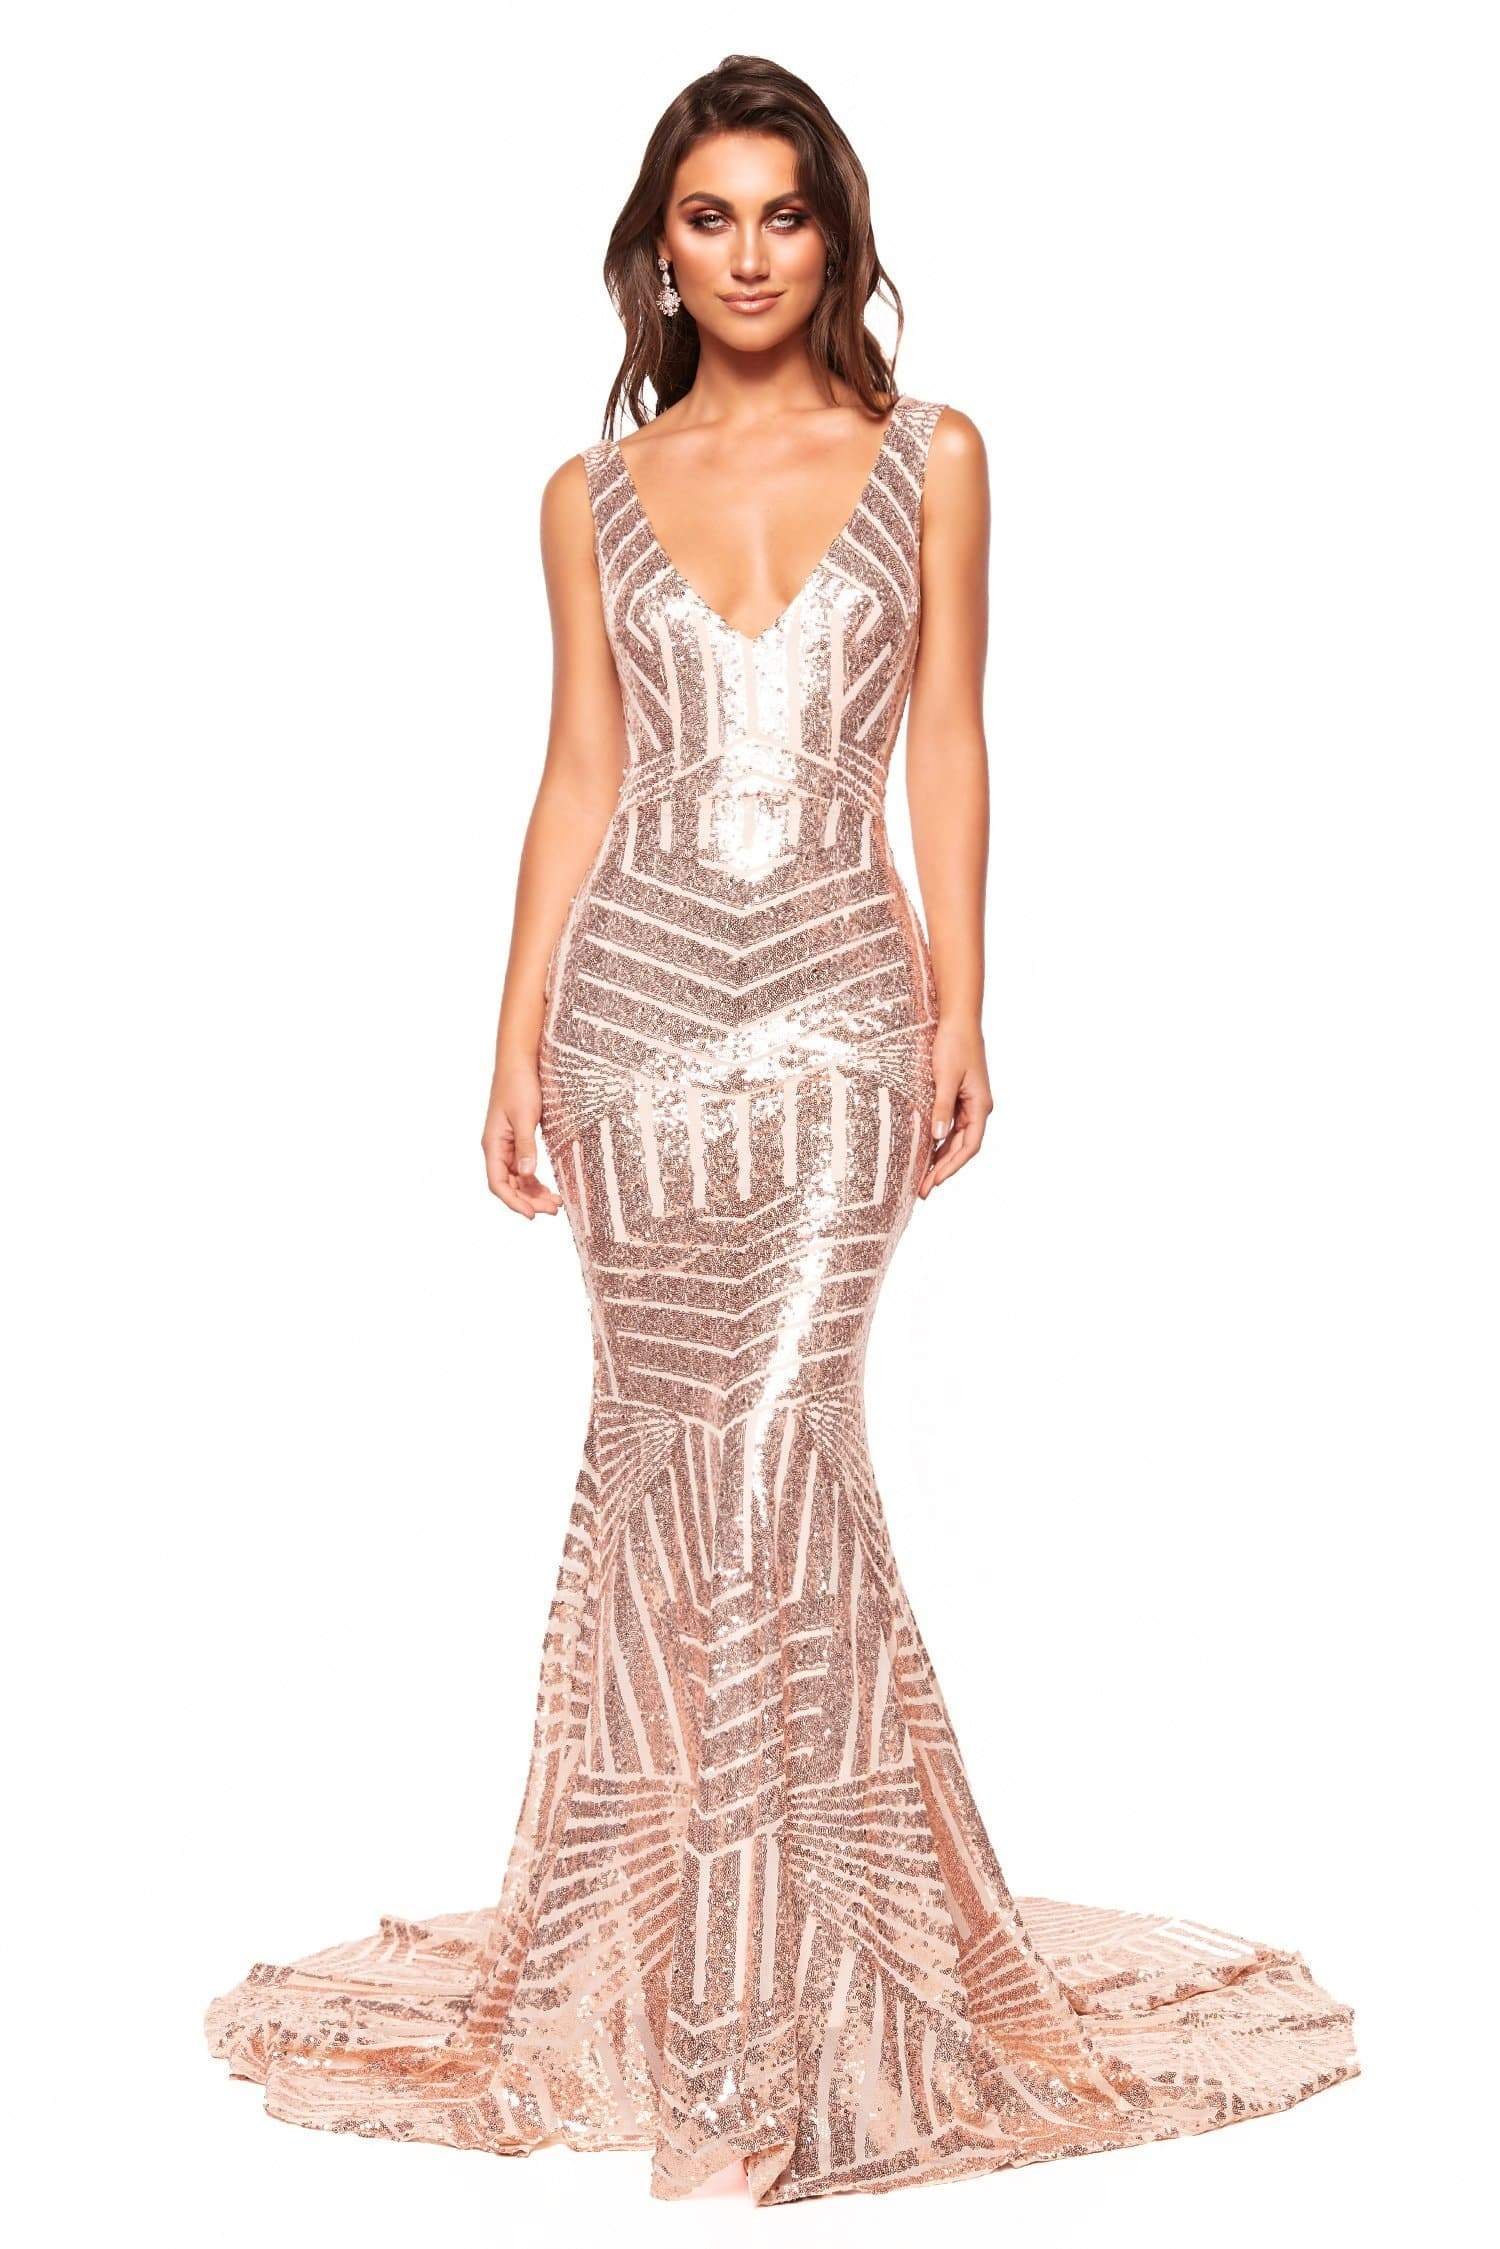 A&N Luxe Serena - Rose Gold Sequin Mermaid Gown with Plunge Neck & Low Back